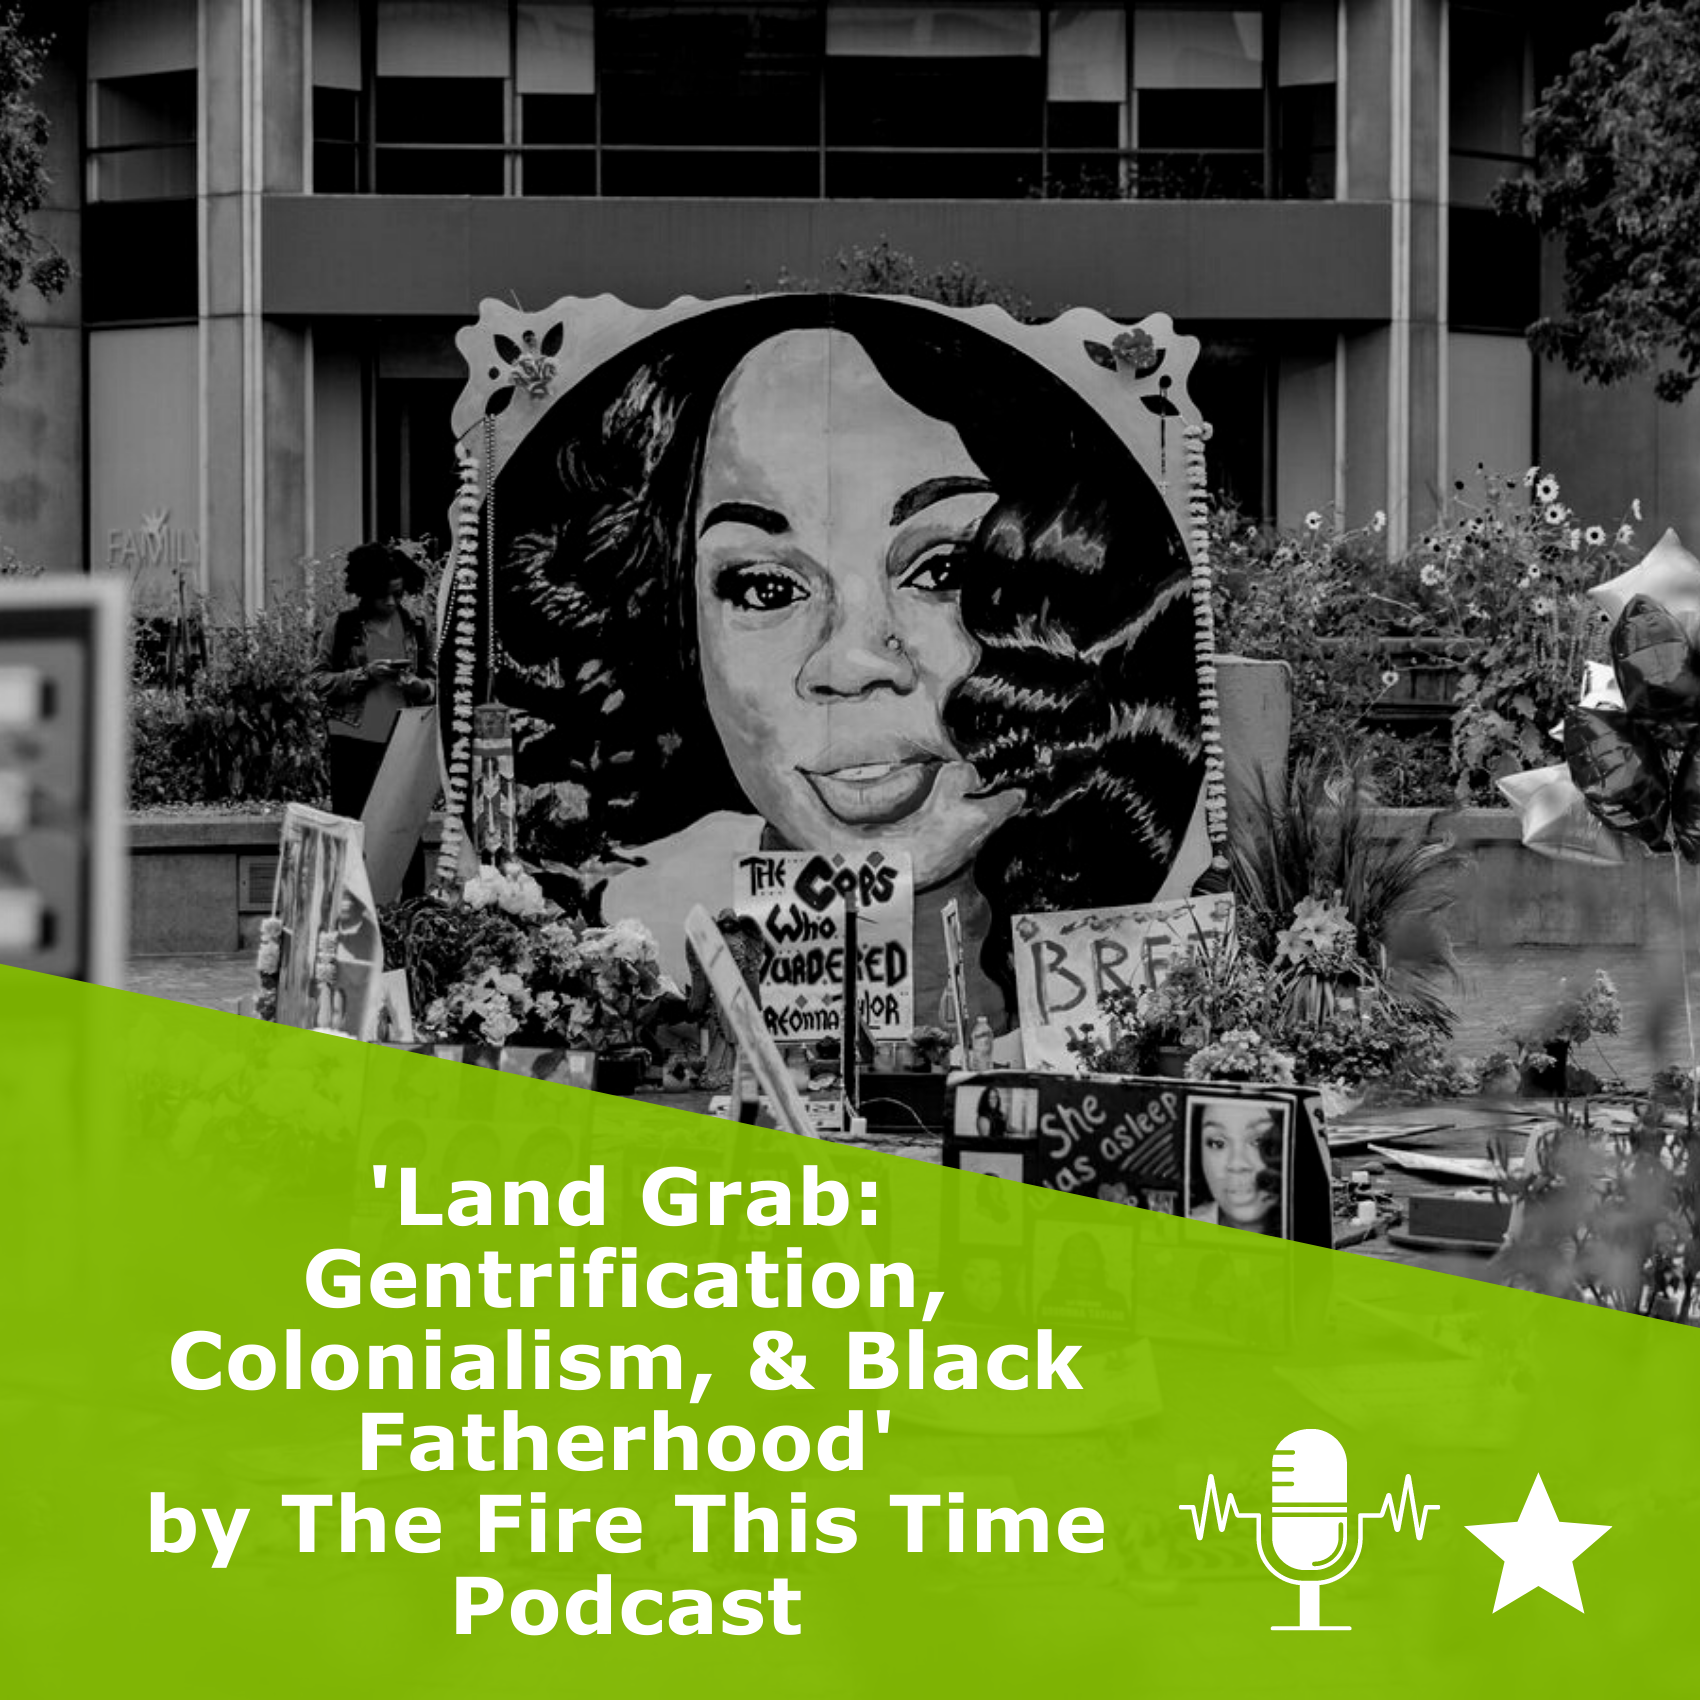 Picture of memorial for Breonna Taylor in black and white. Title 'Land Grab: Gentrification, Colonialism, & Black Fatherhood' by The Fire This Time Podcast. It is a podcast rated 1 star